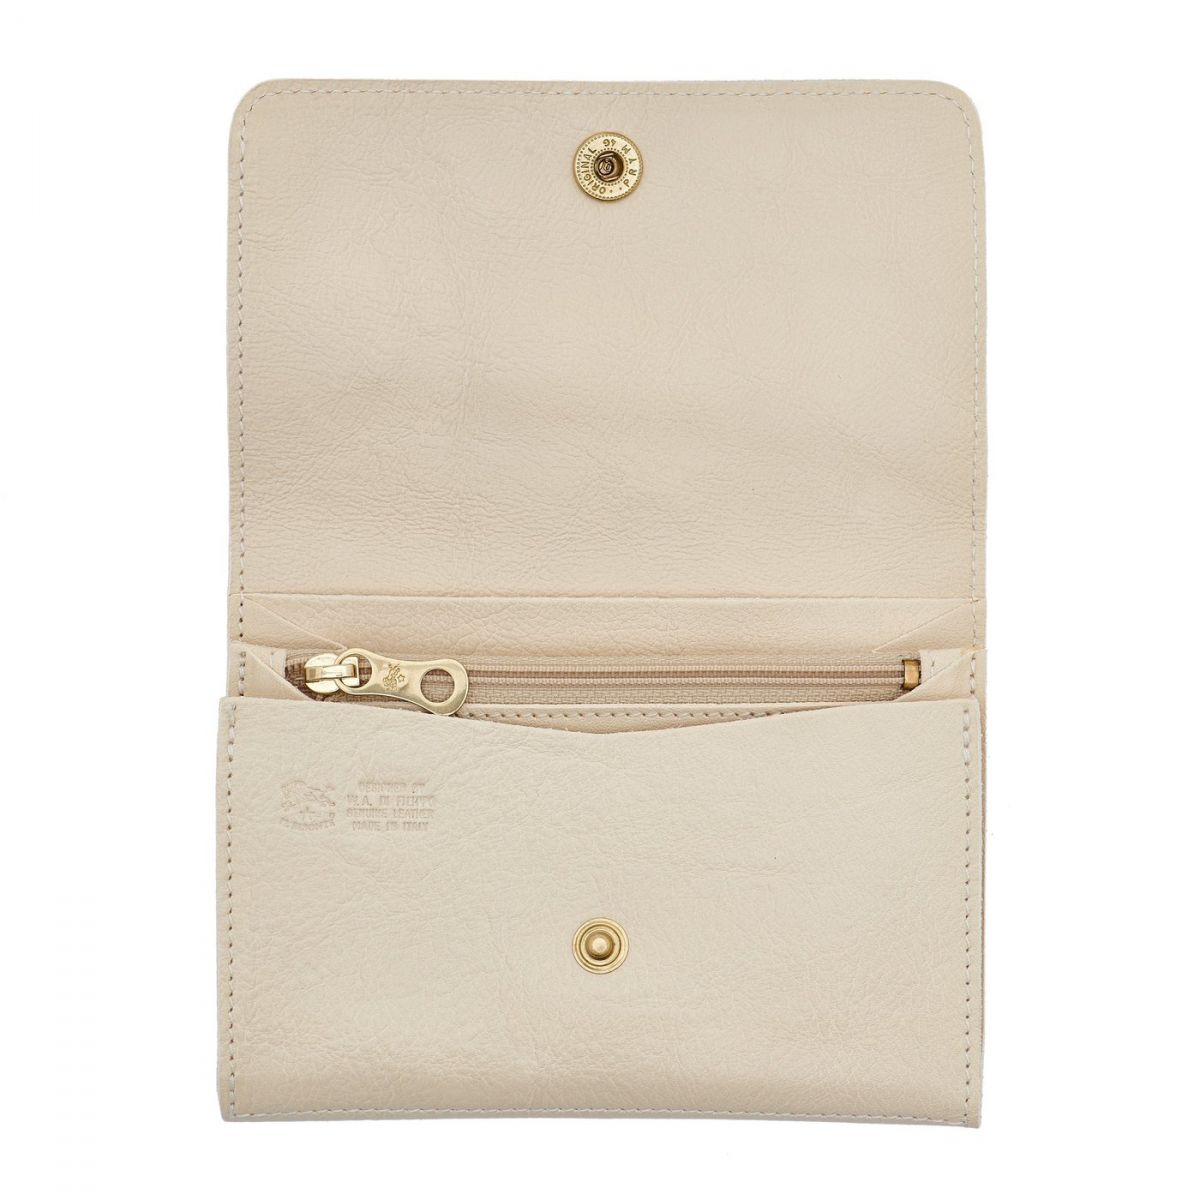 Alberese - Wallet in Cowhide Leather color Ivory - SMW028 | Details